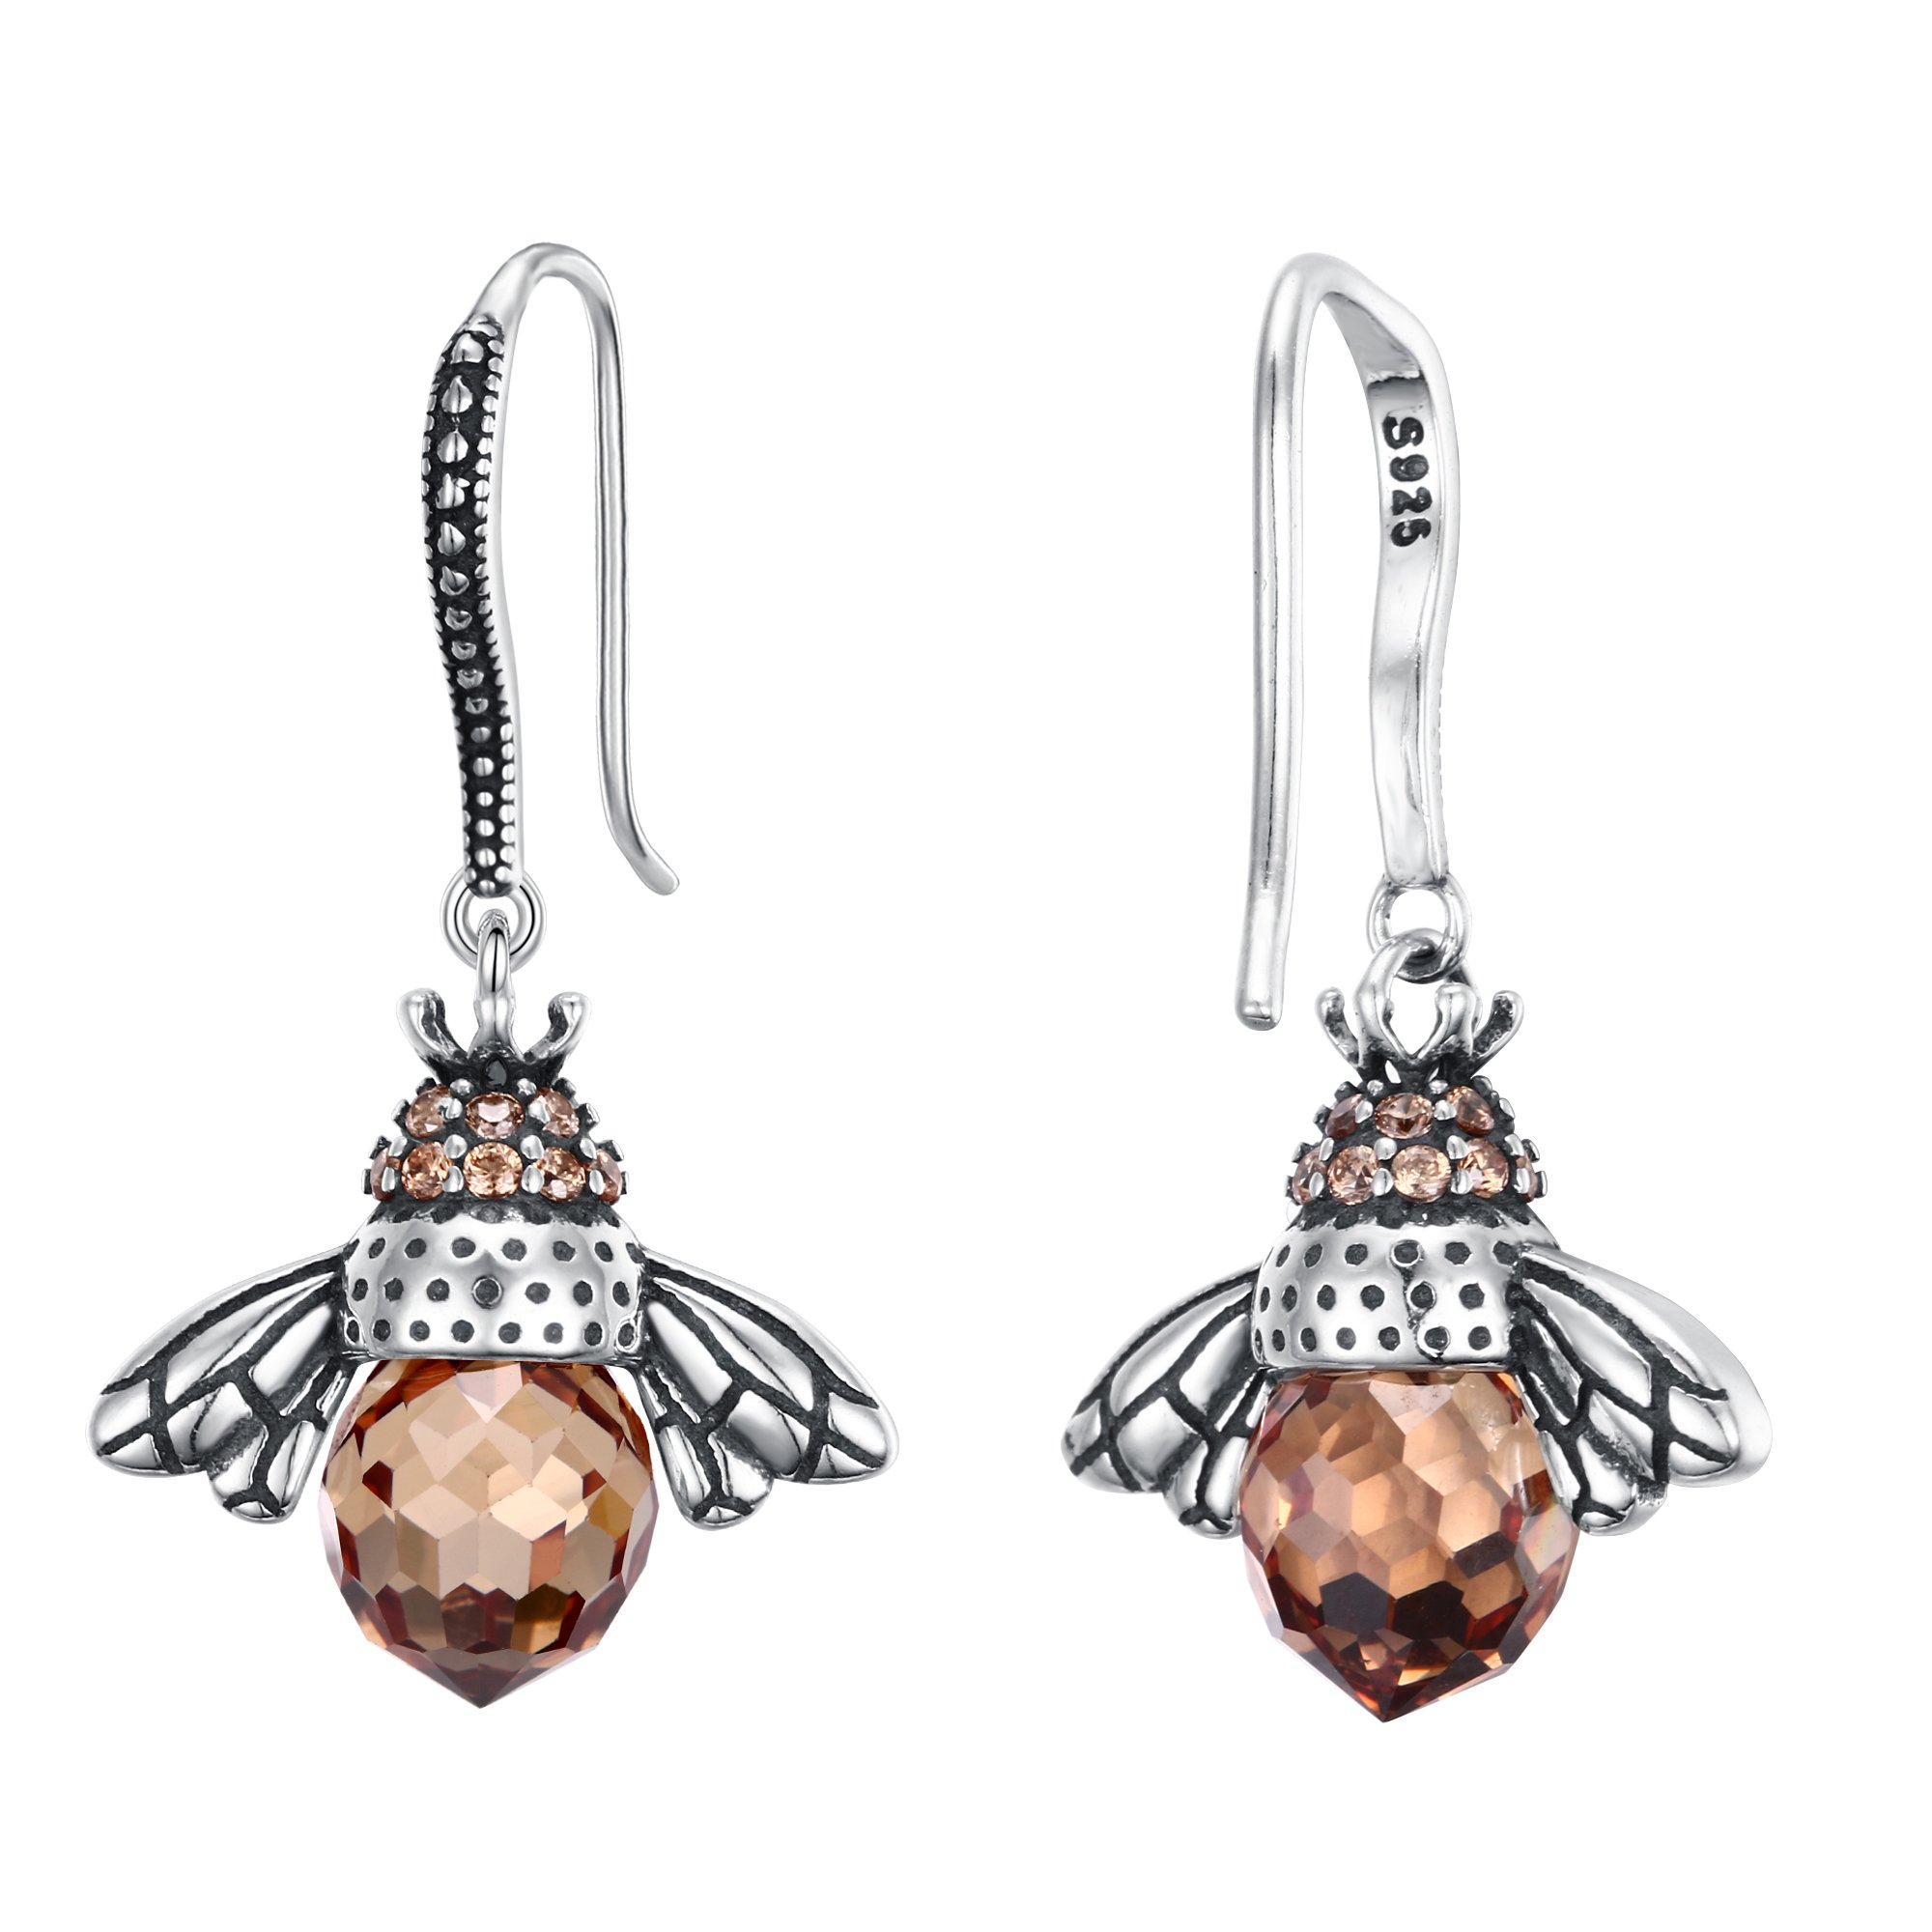 EleQueen 925 Sterling Silver Vintage Inspired Brown Crystals Queen Bee Earrings Jewelry For Women by EleQueen (Image #4)